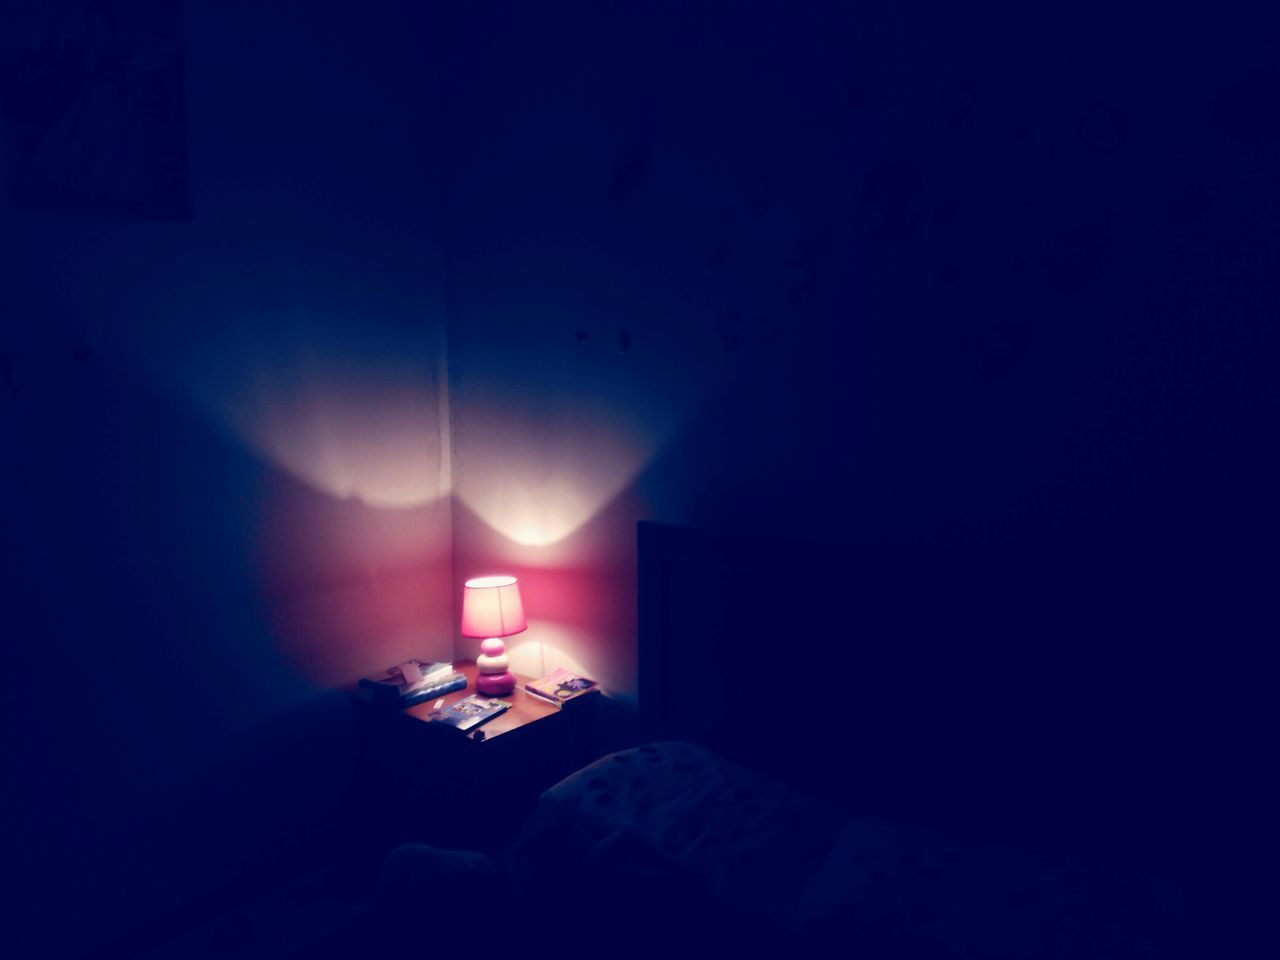 illuminated, indoors, bed, lighting equipment, dark, bedroom, no people, home interior, night